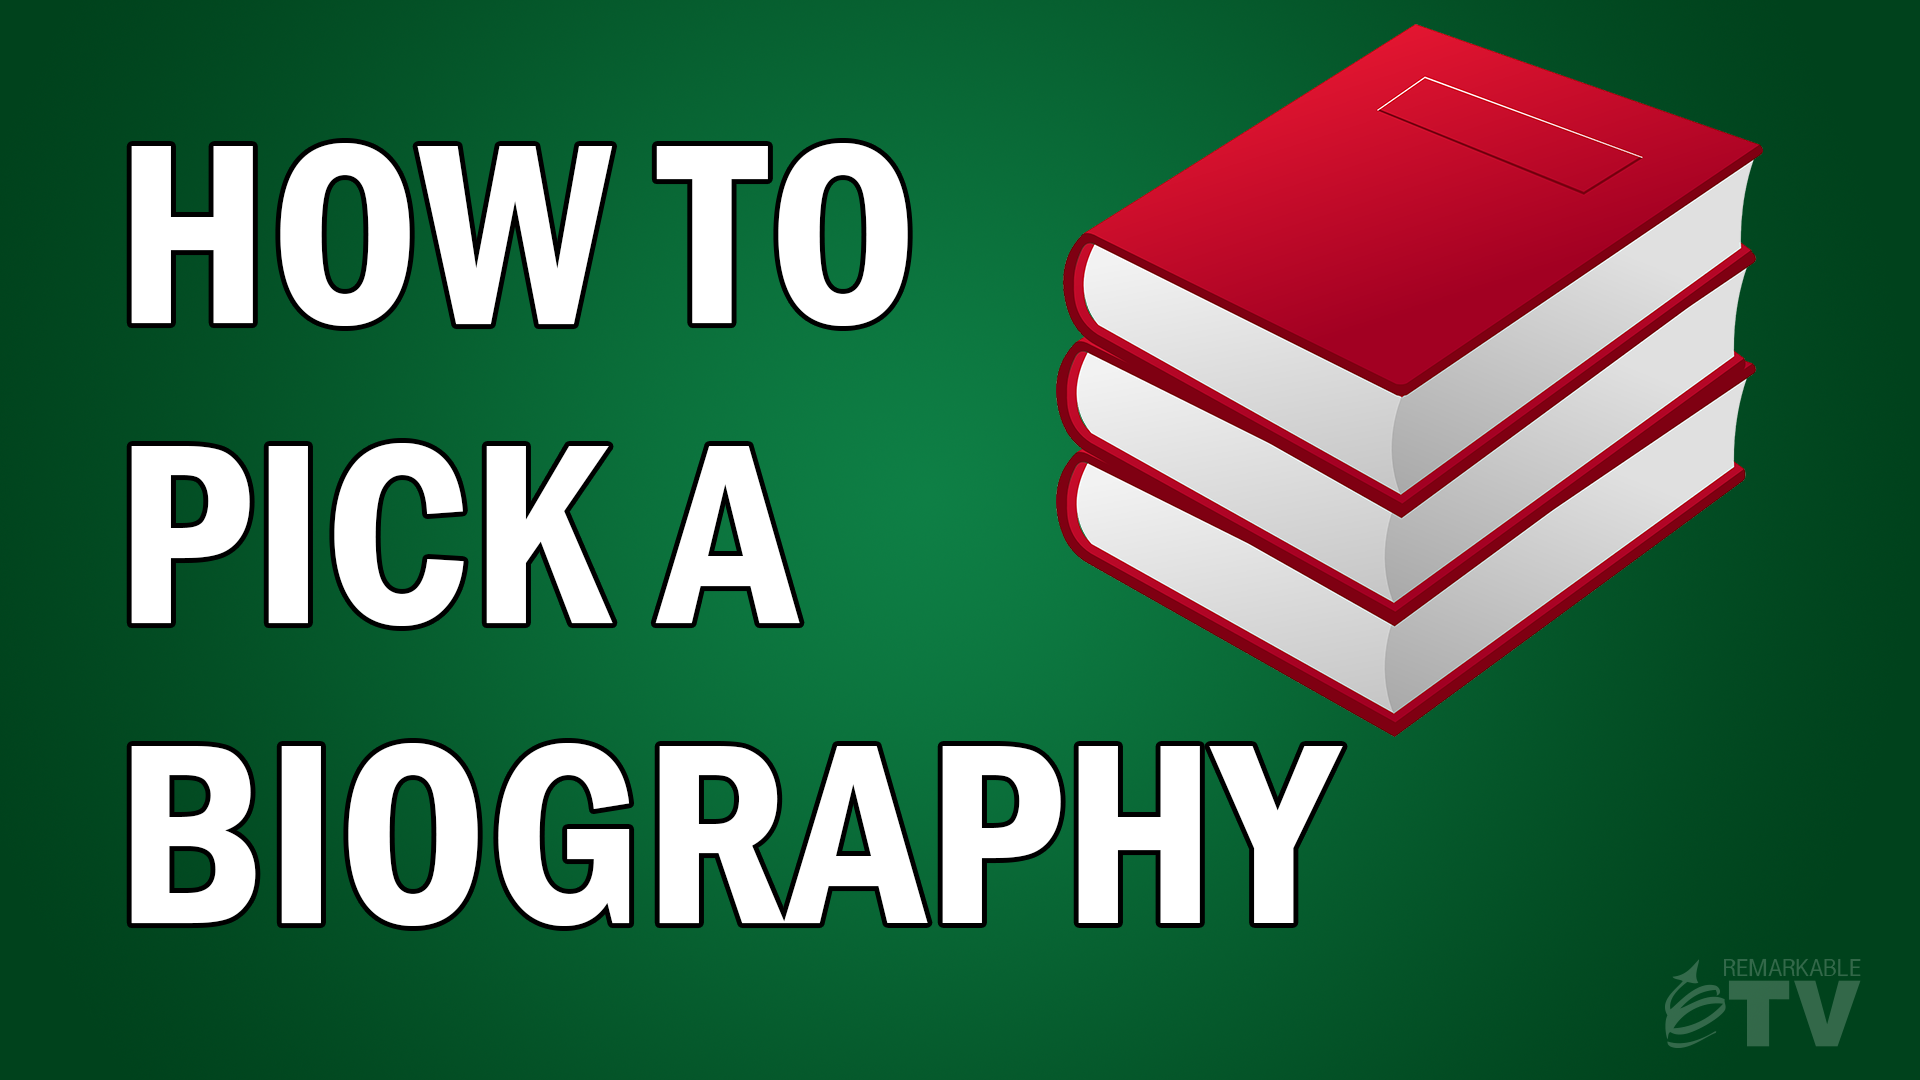 How to Pick a Biography with Kevin Eikenberry